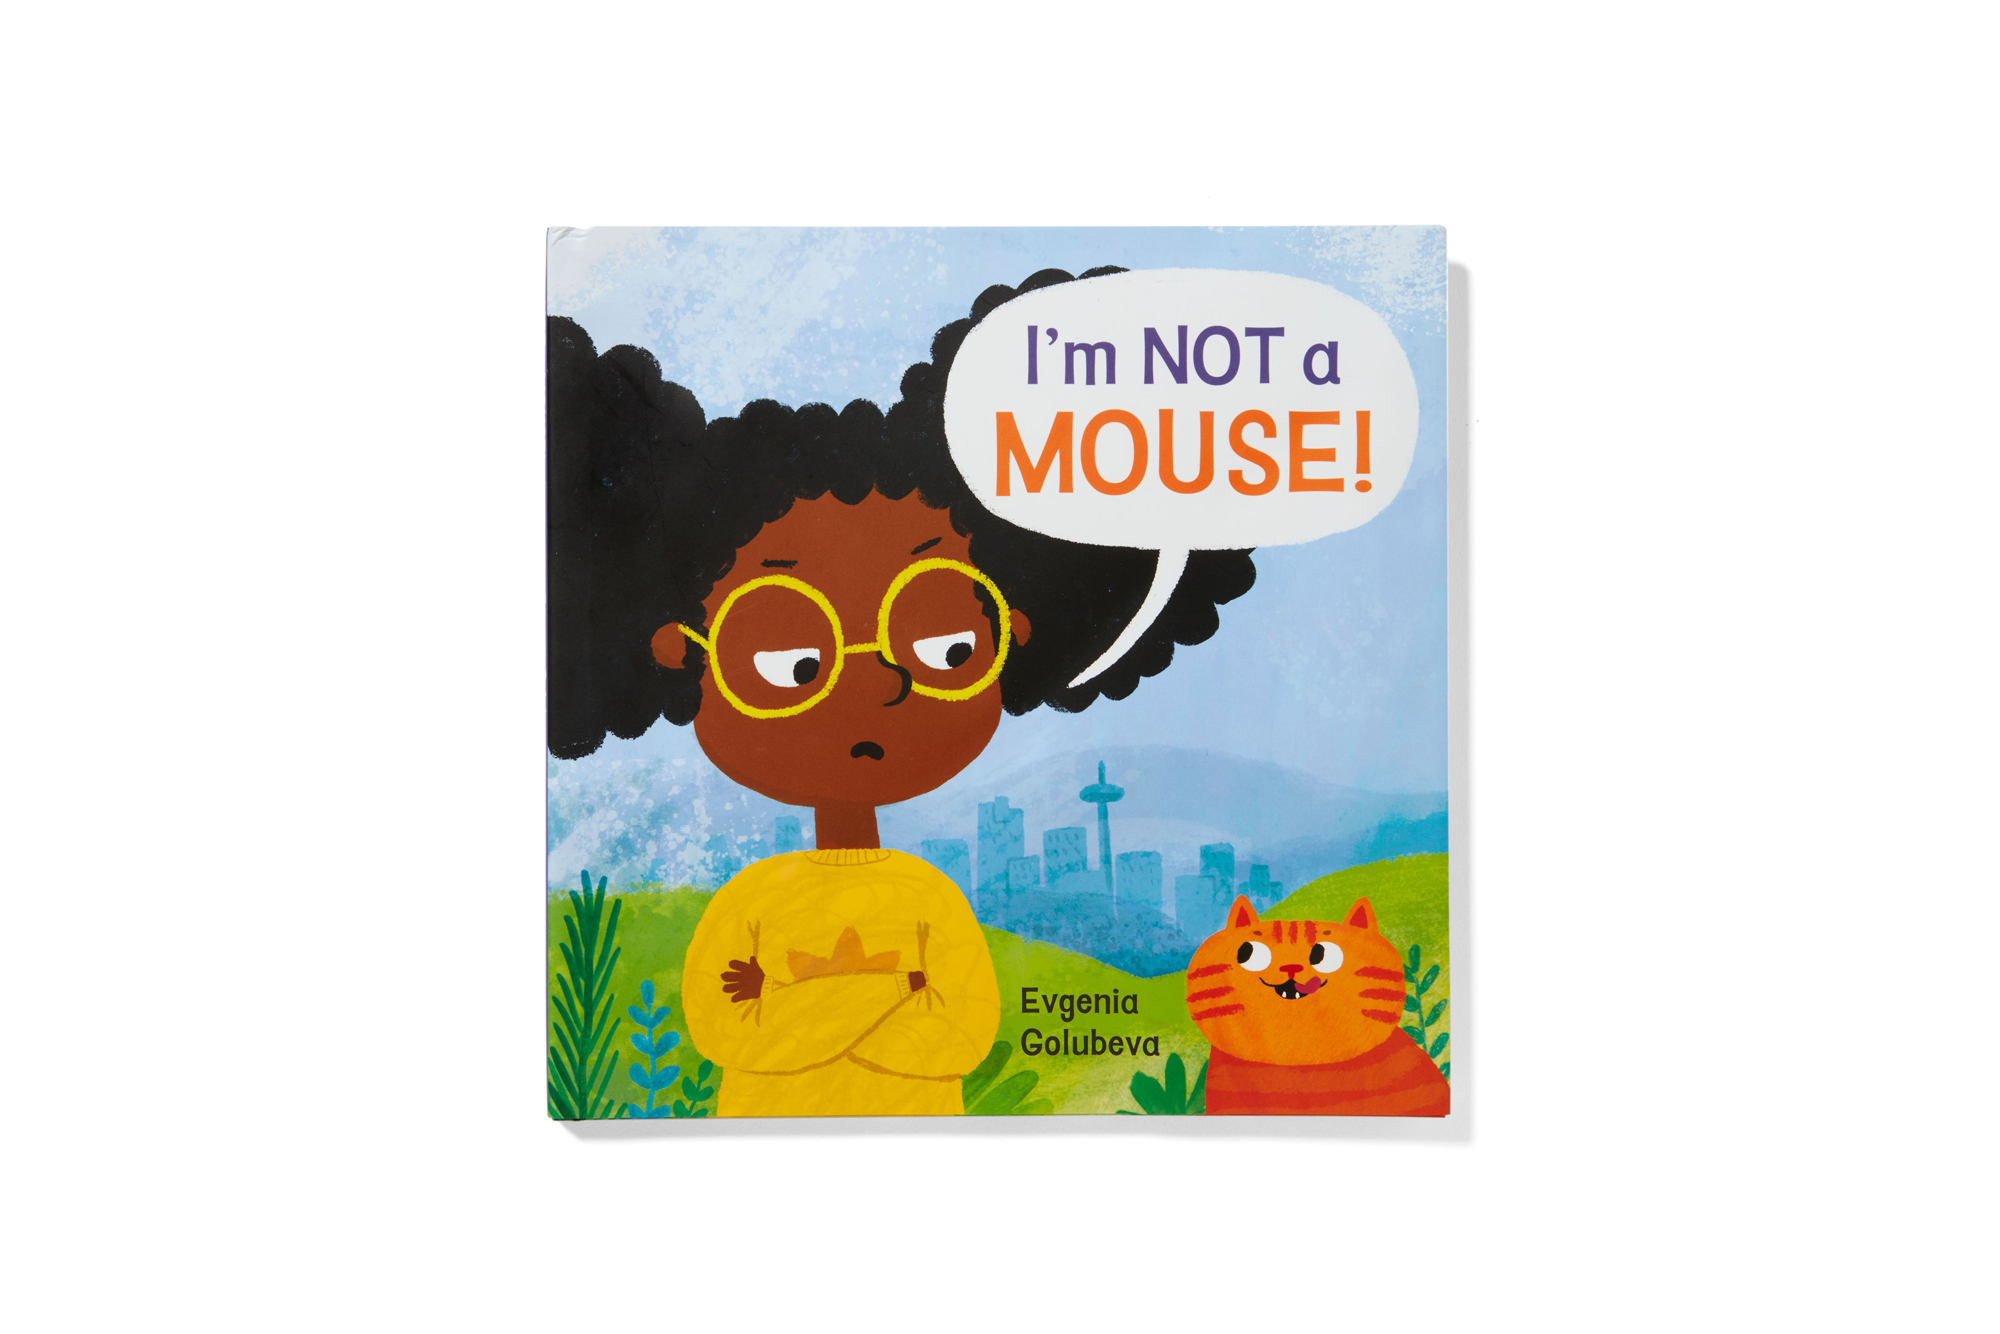 I'm NOT a MOUSE! book cover